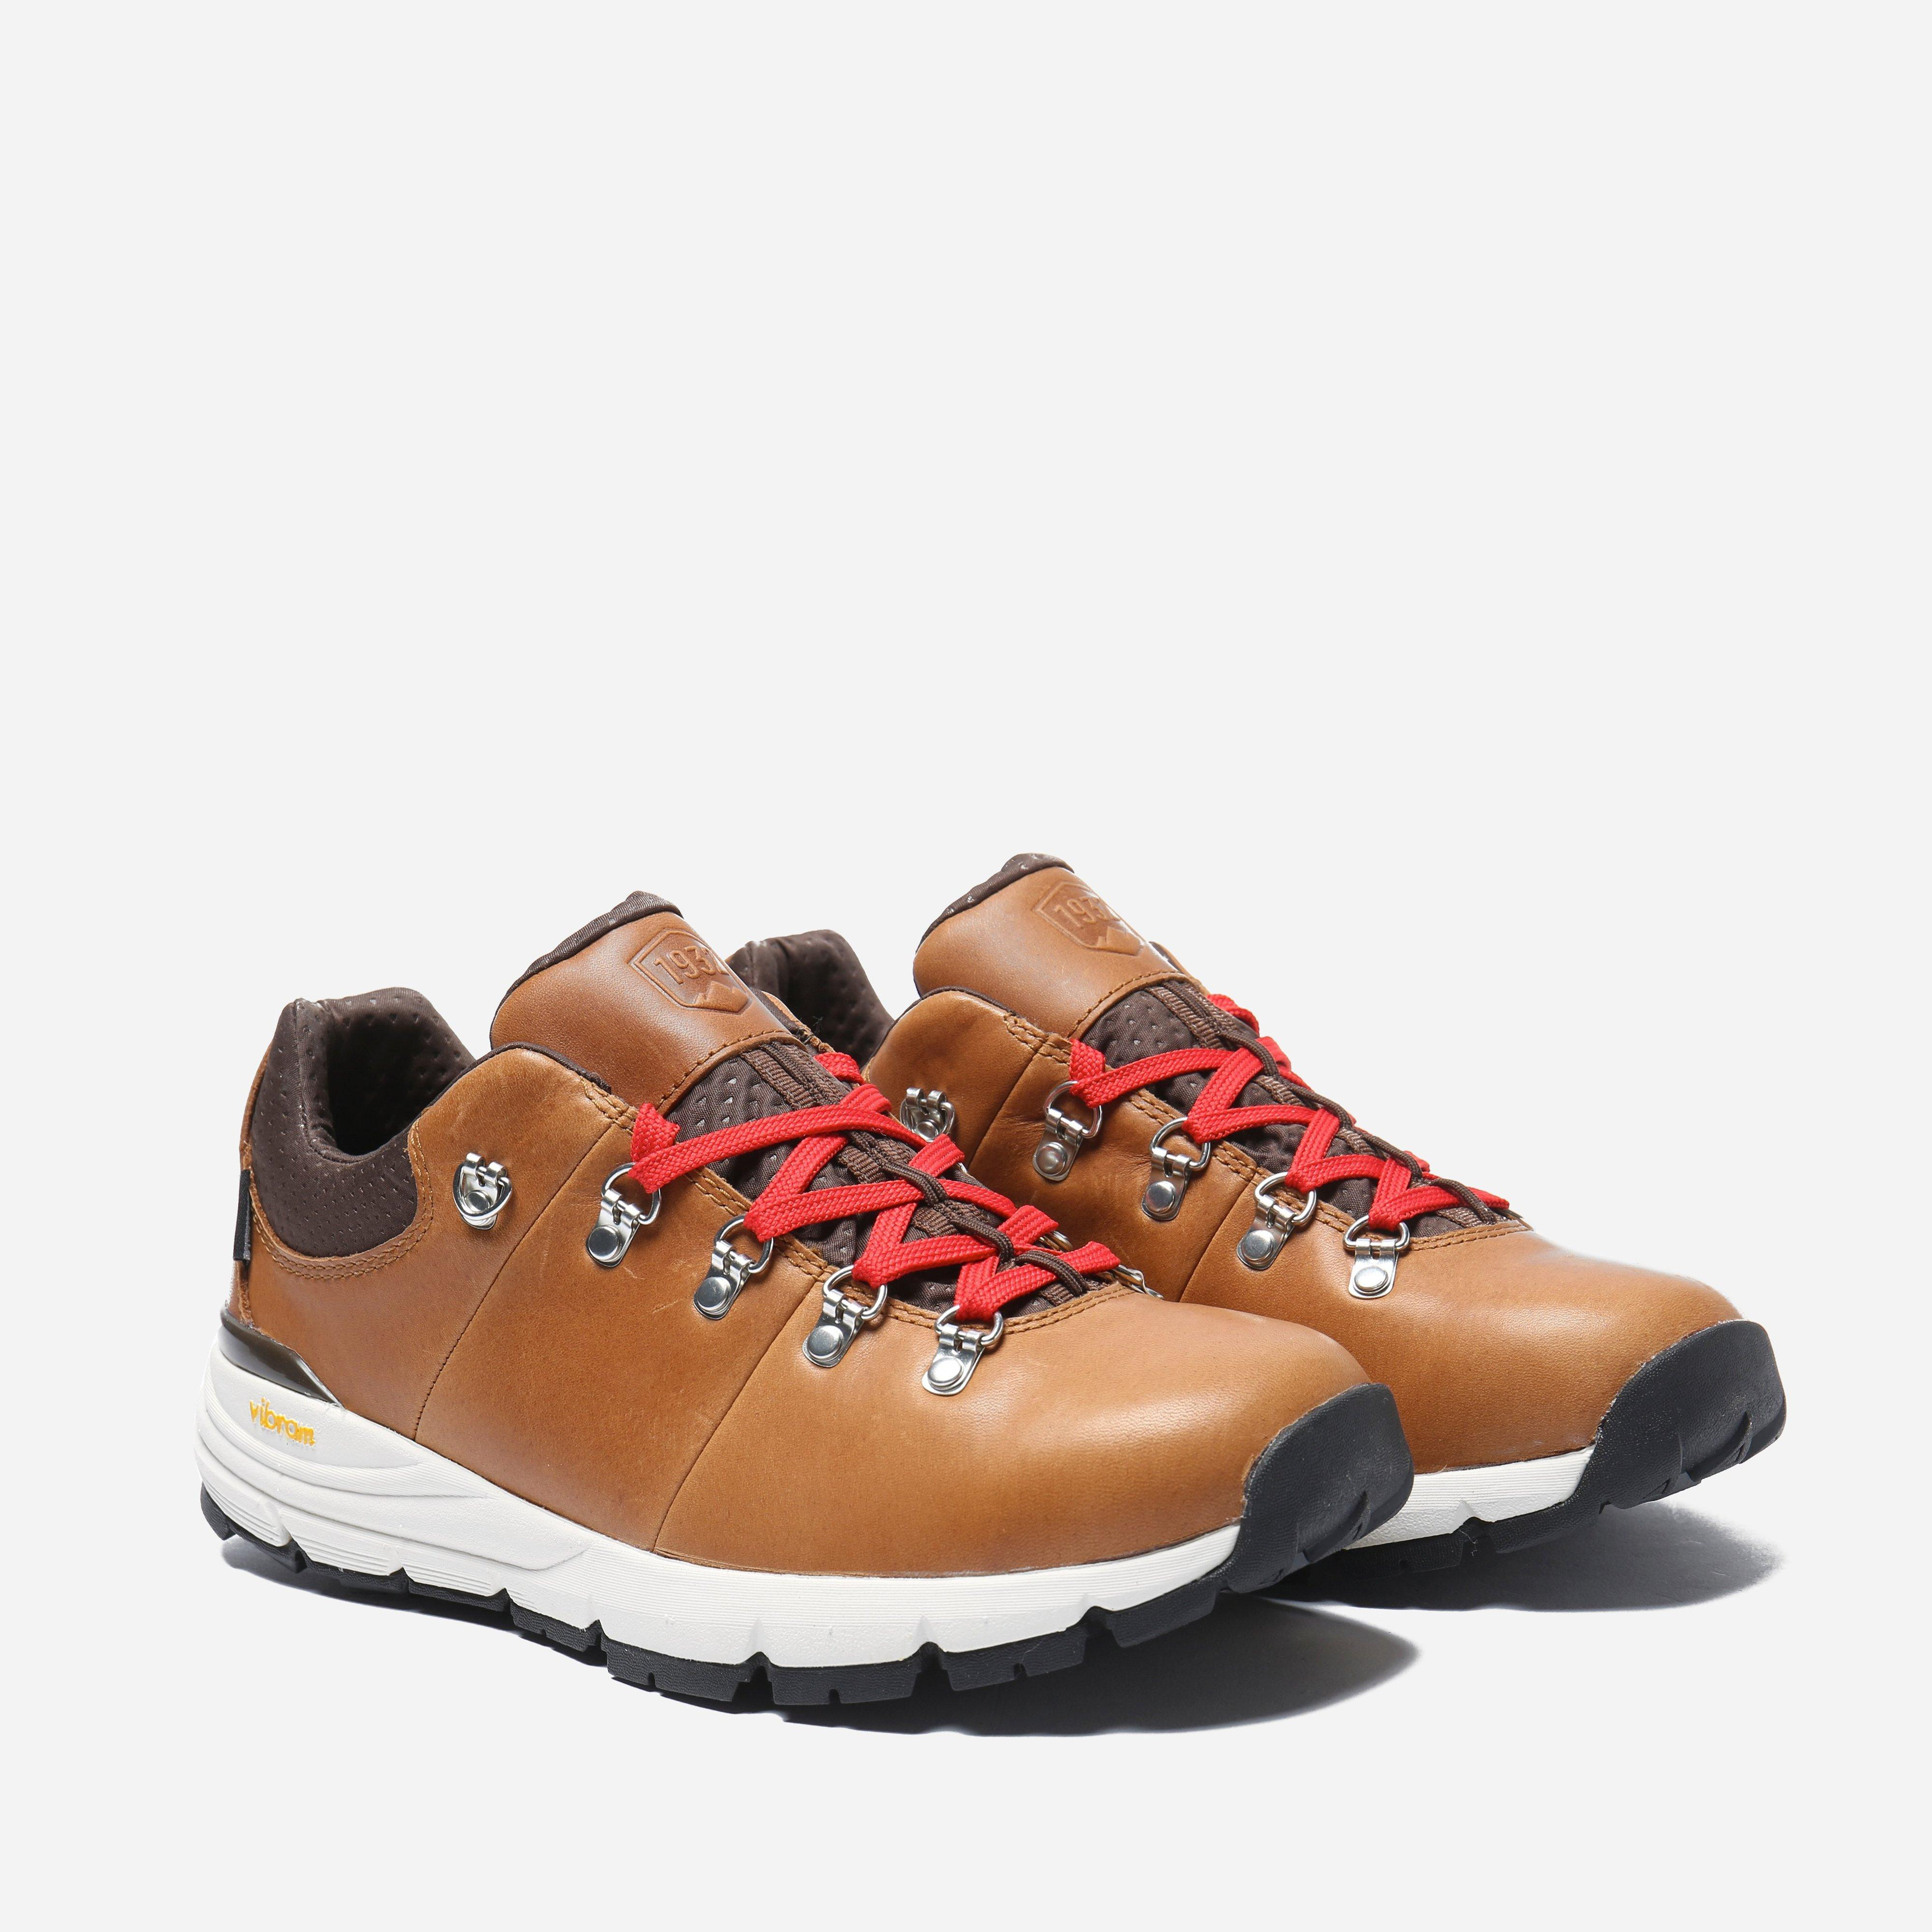 Danner Mountain 600 Low Boot